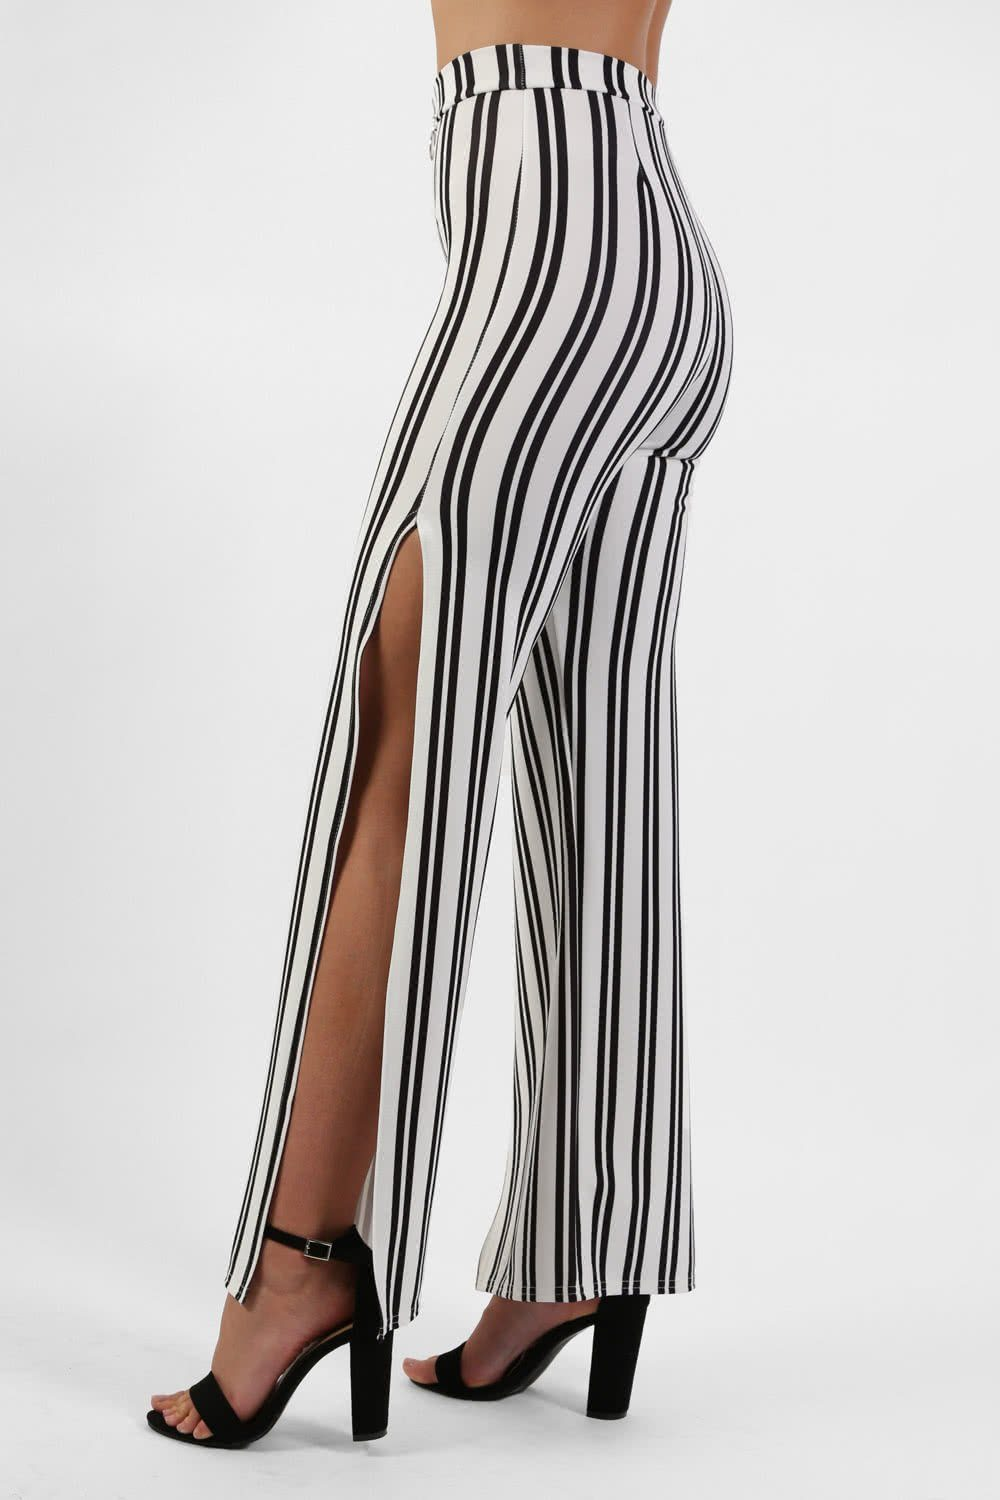 Monochrome Stripe Side Split Wide Leg Trousers in Ivory White 0